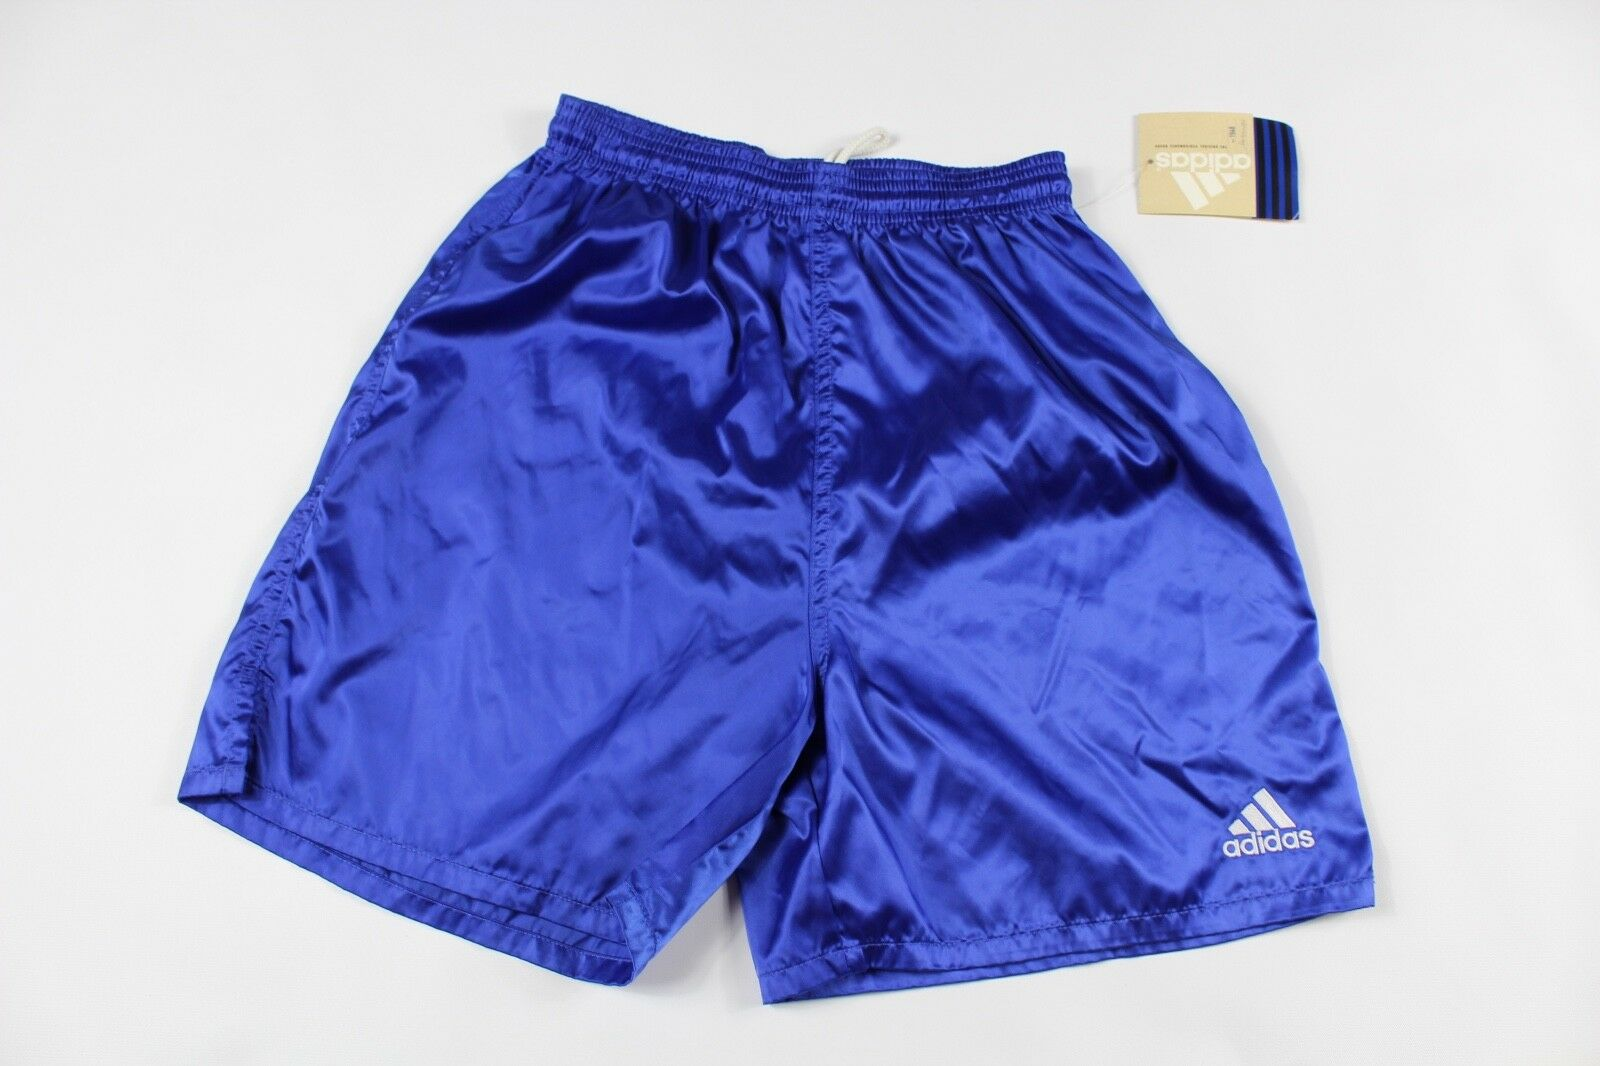 Vintage 90s New Adidas Mens Small Spell Out Soccer Jogging Gym Shorts Royal bluee